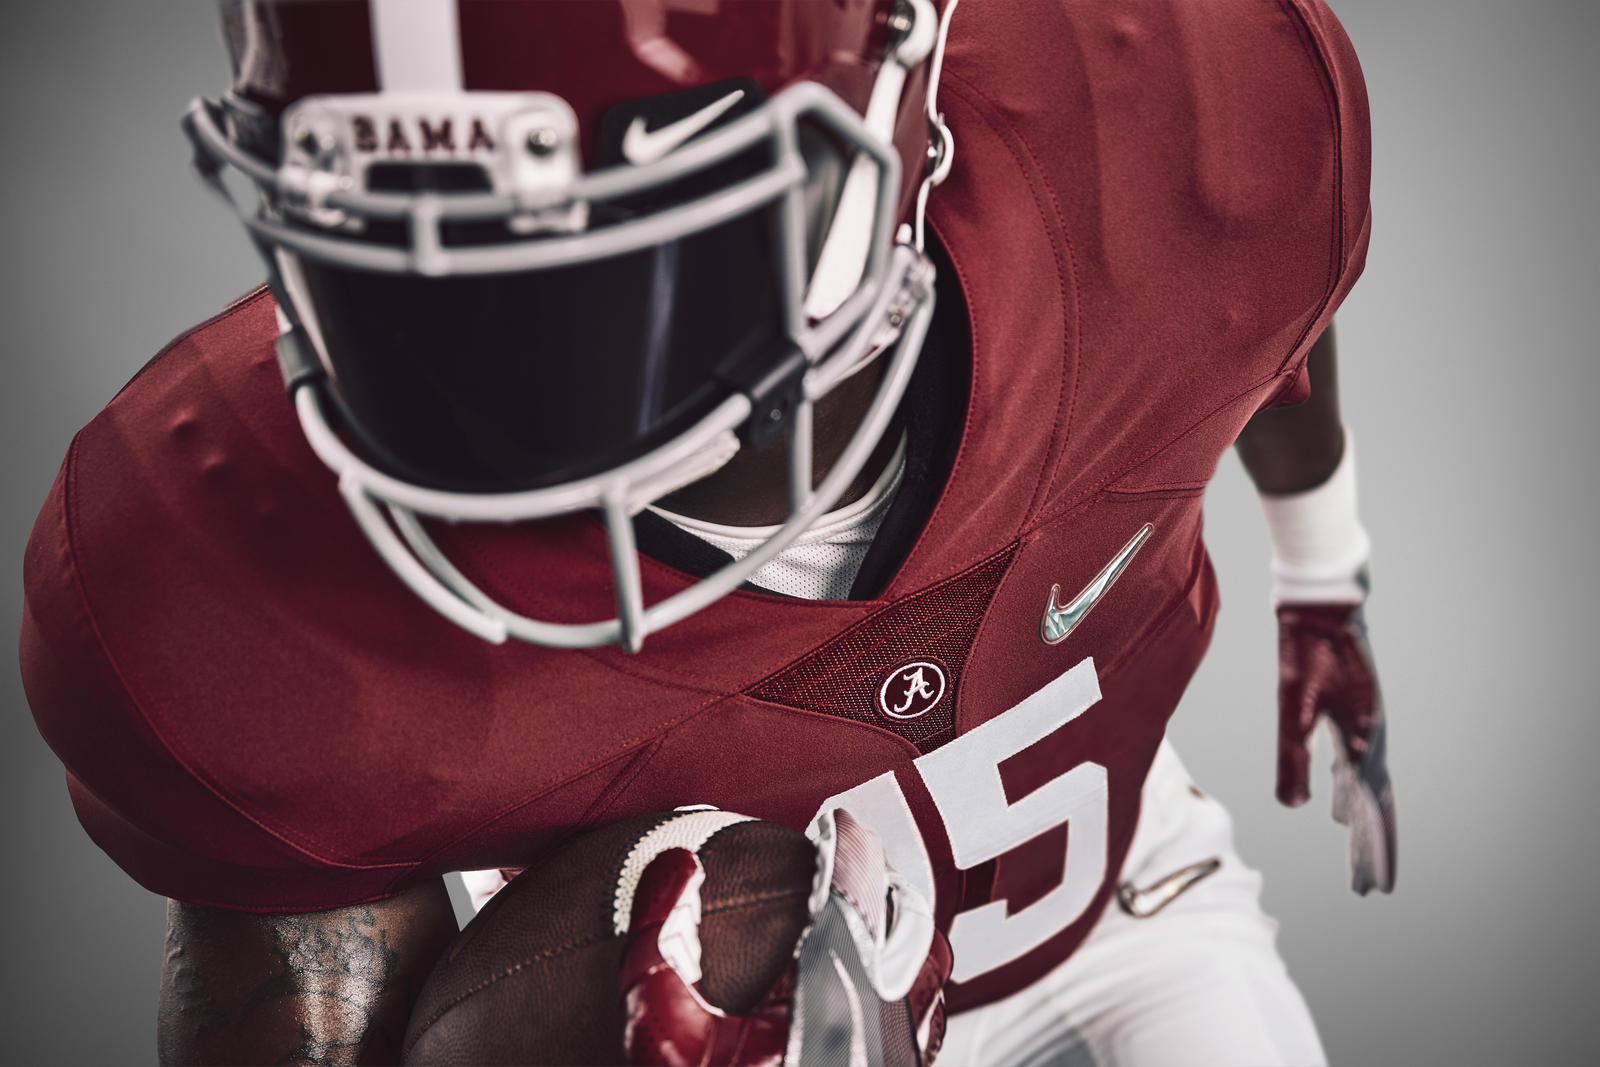 Alabama Crimson Tide Basketball Jersey >> Nike Reveals College Football Playoff Uniform Looks - Nike News